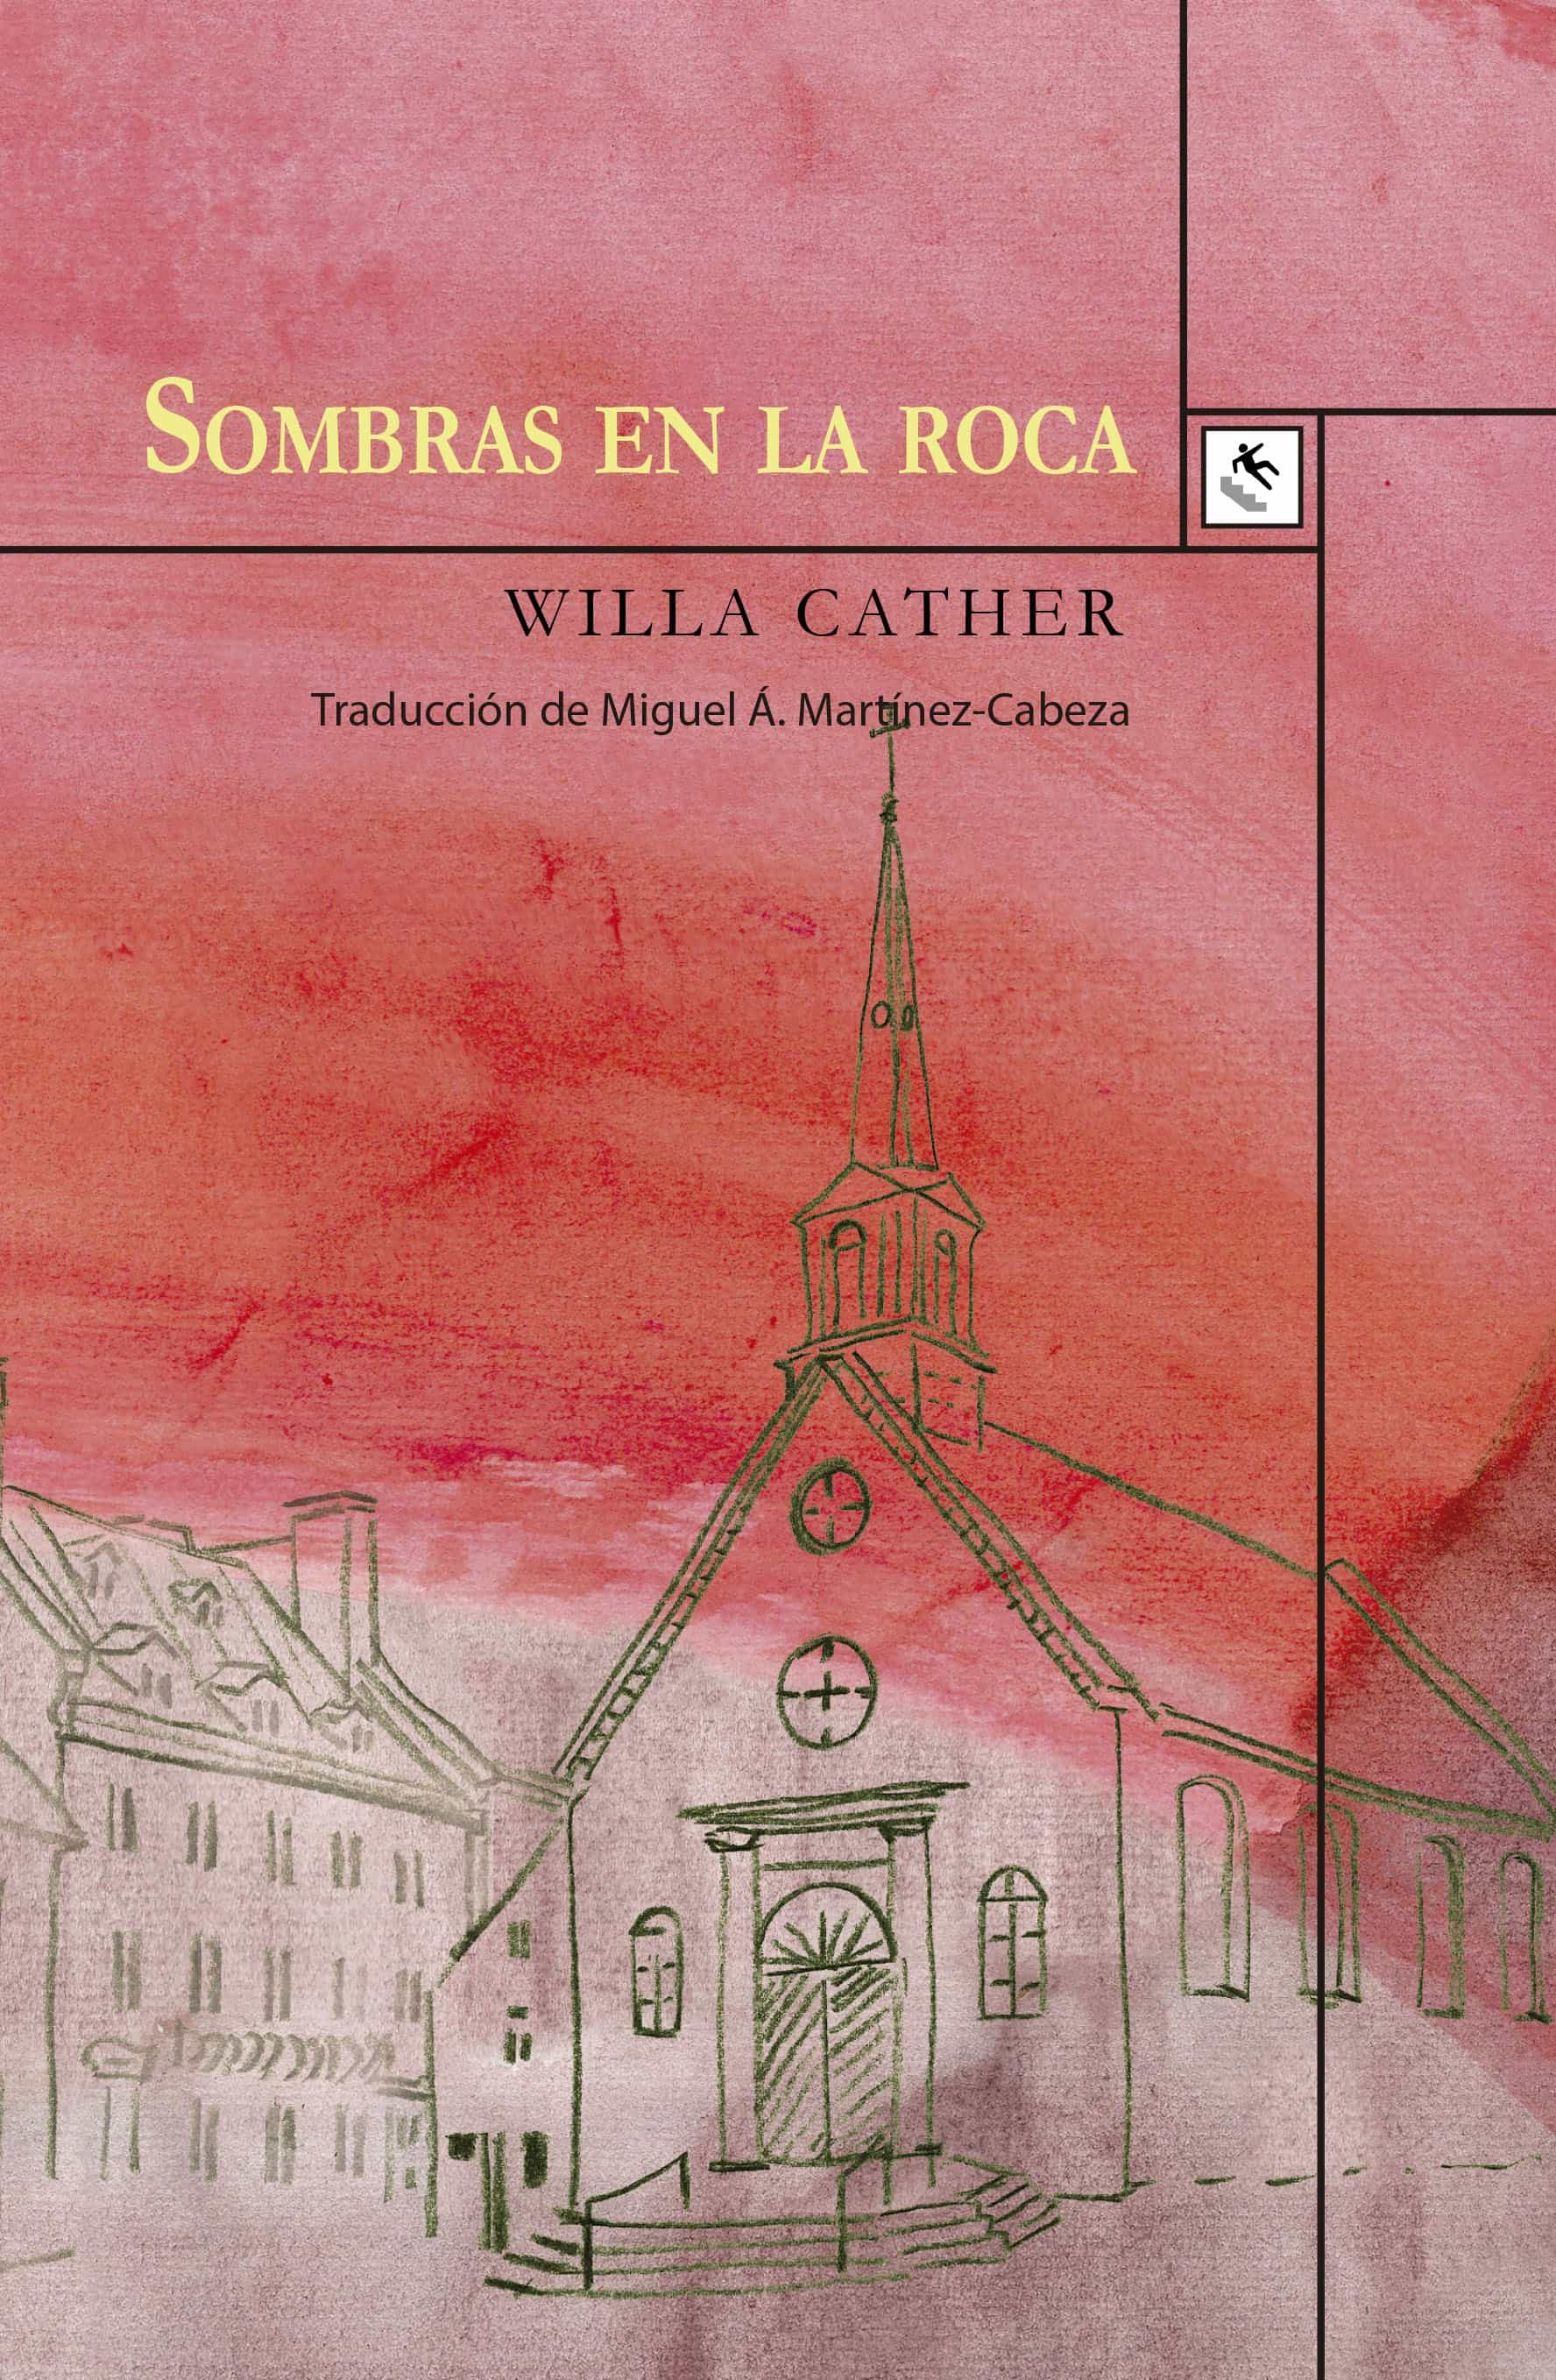 Image result for sombras en la roca willa cather